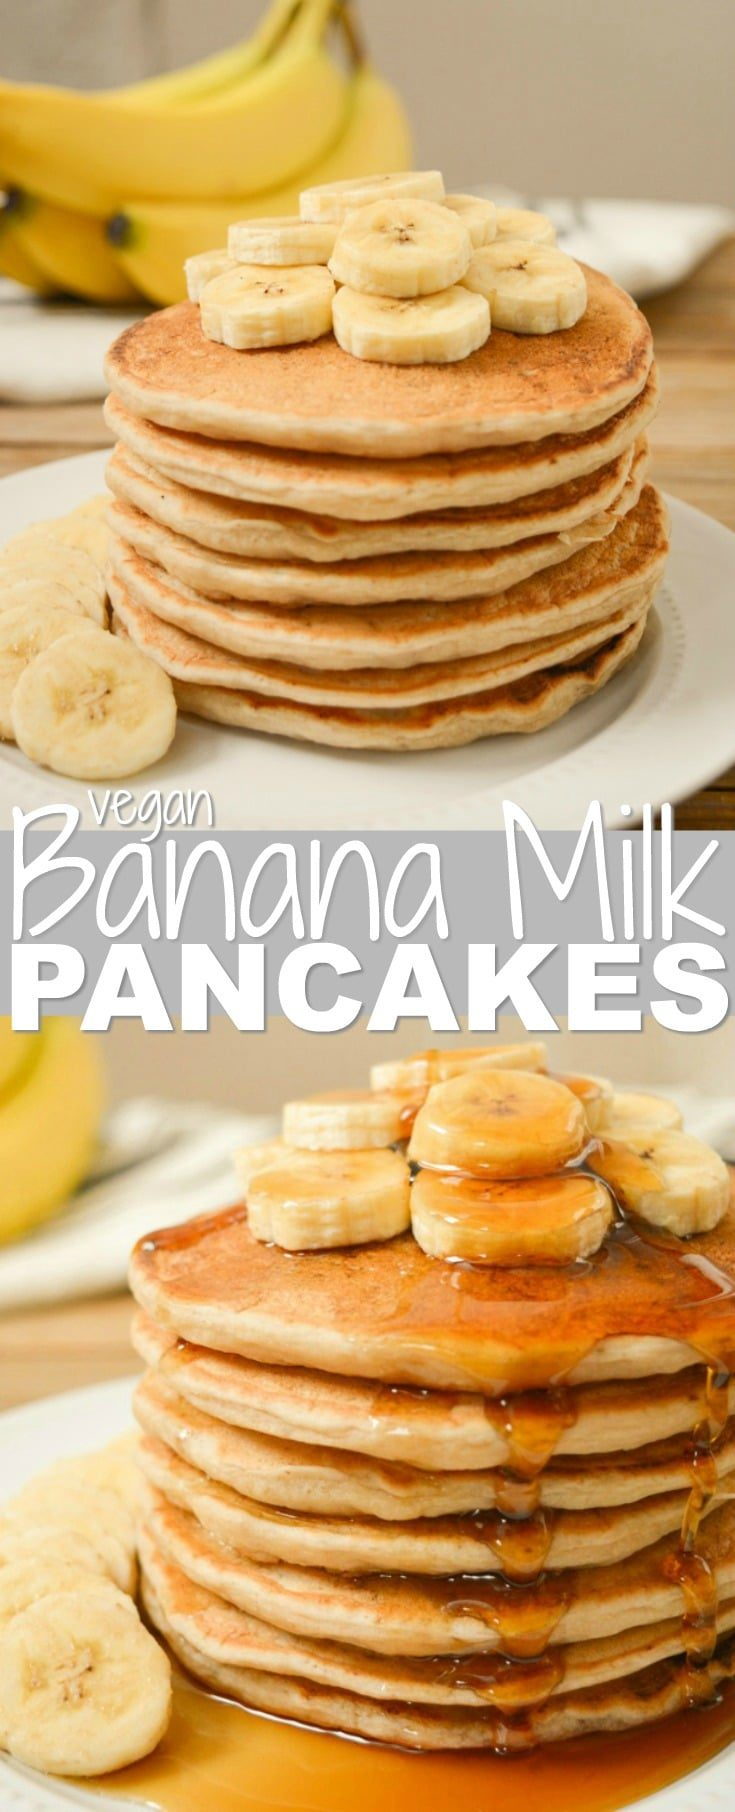 Vegan Banana Milk Pancakes are an egg-free, dairy-free and nut-free breakfast!  Sweet, ripe bananas and coconut sugar keep these pancakes refined-sugar-free as well!  Top your stack of banana-filled pancakes with extra banana slices and a drizzle of maple syrup for an easy weekend brunch!  #veganpancakes #dairyfree #eggfree #veganrecipes #bananarecipe #bananapancakes #veganbreakfast #veganbrunch